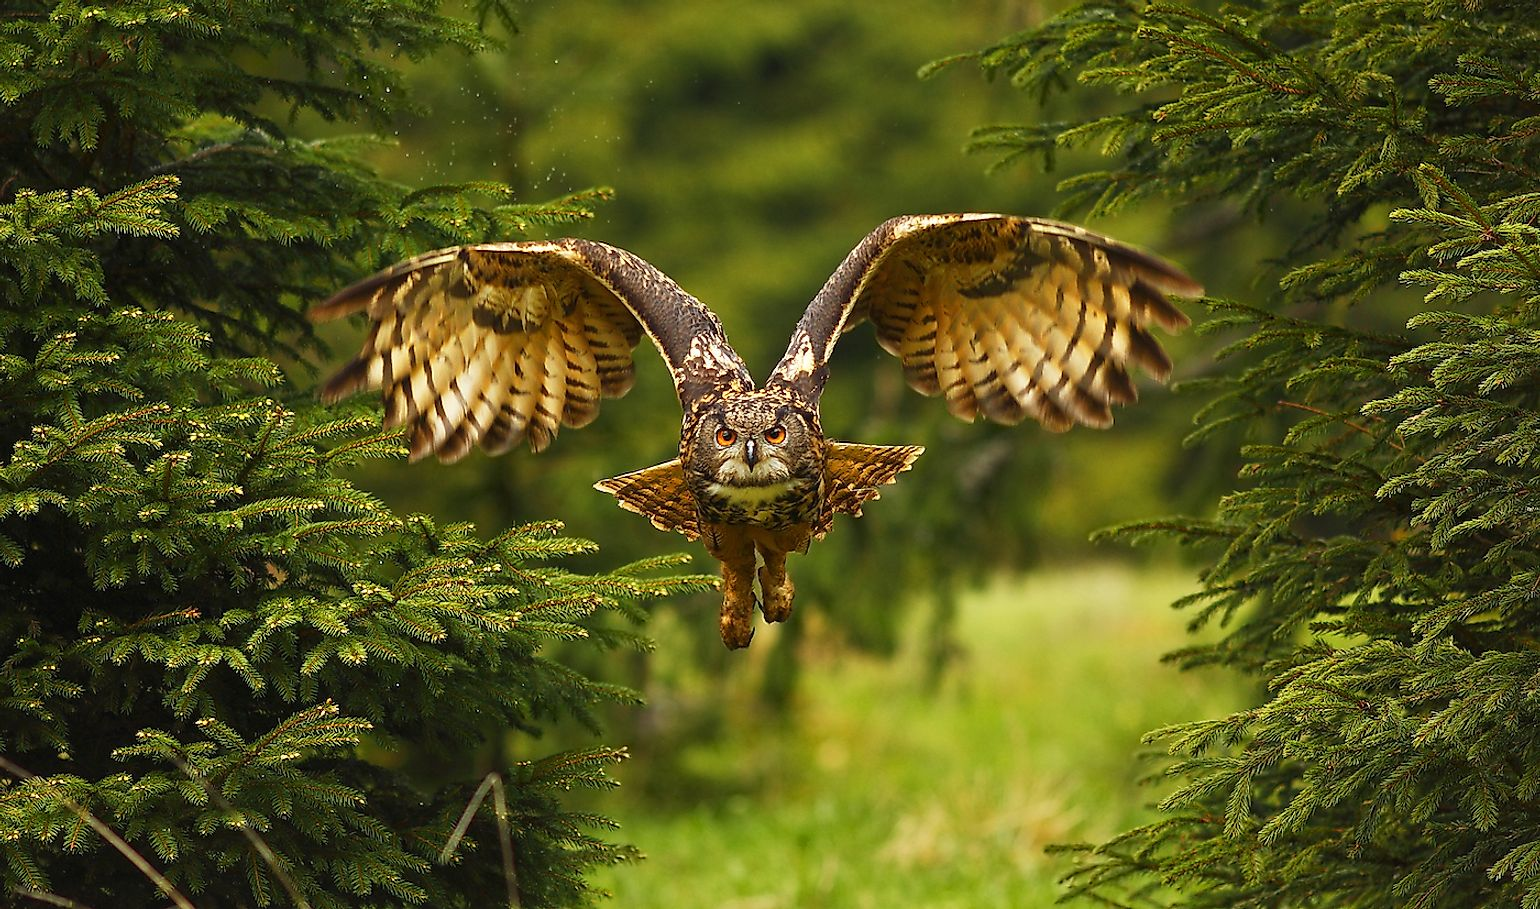 The Eurasian eagle-owl flying in the forest in the mountains low tatra. Image credit: Jan_Broz/Shutterstock.com